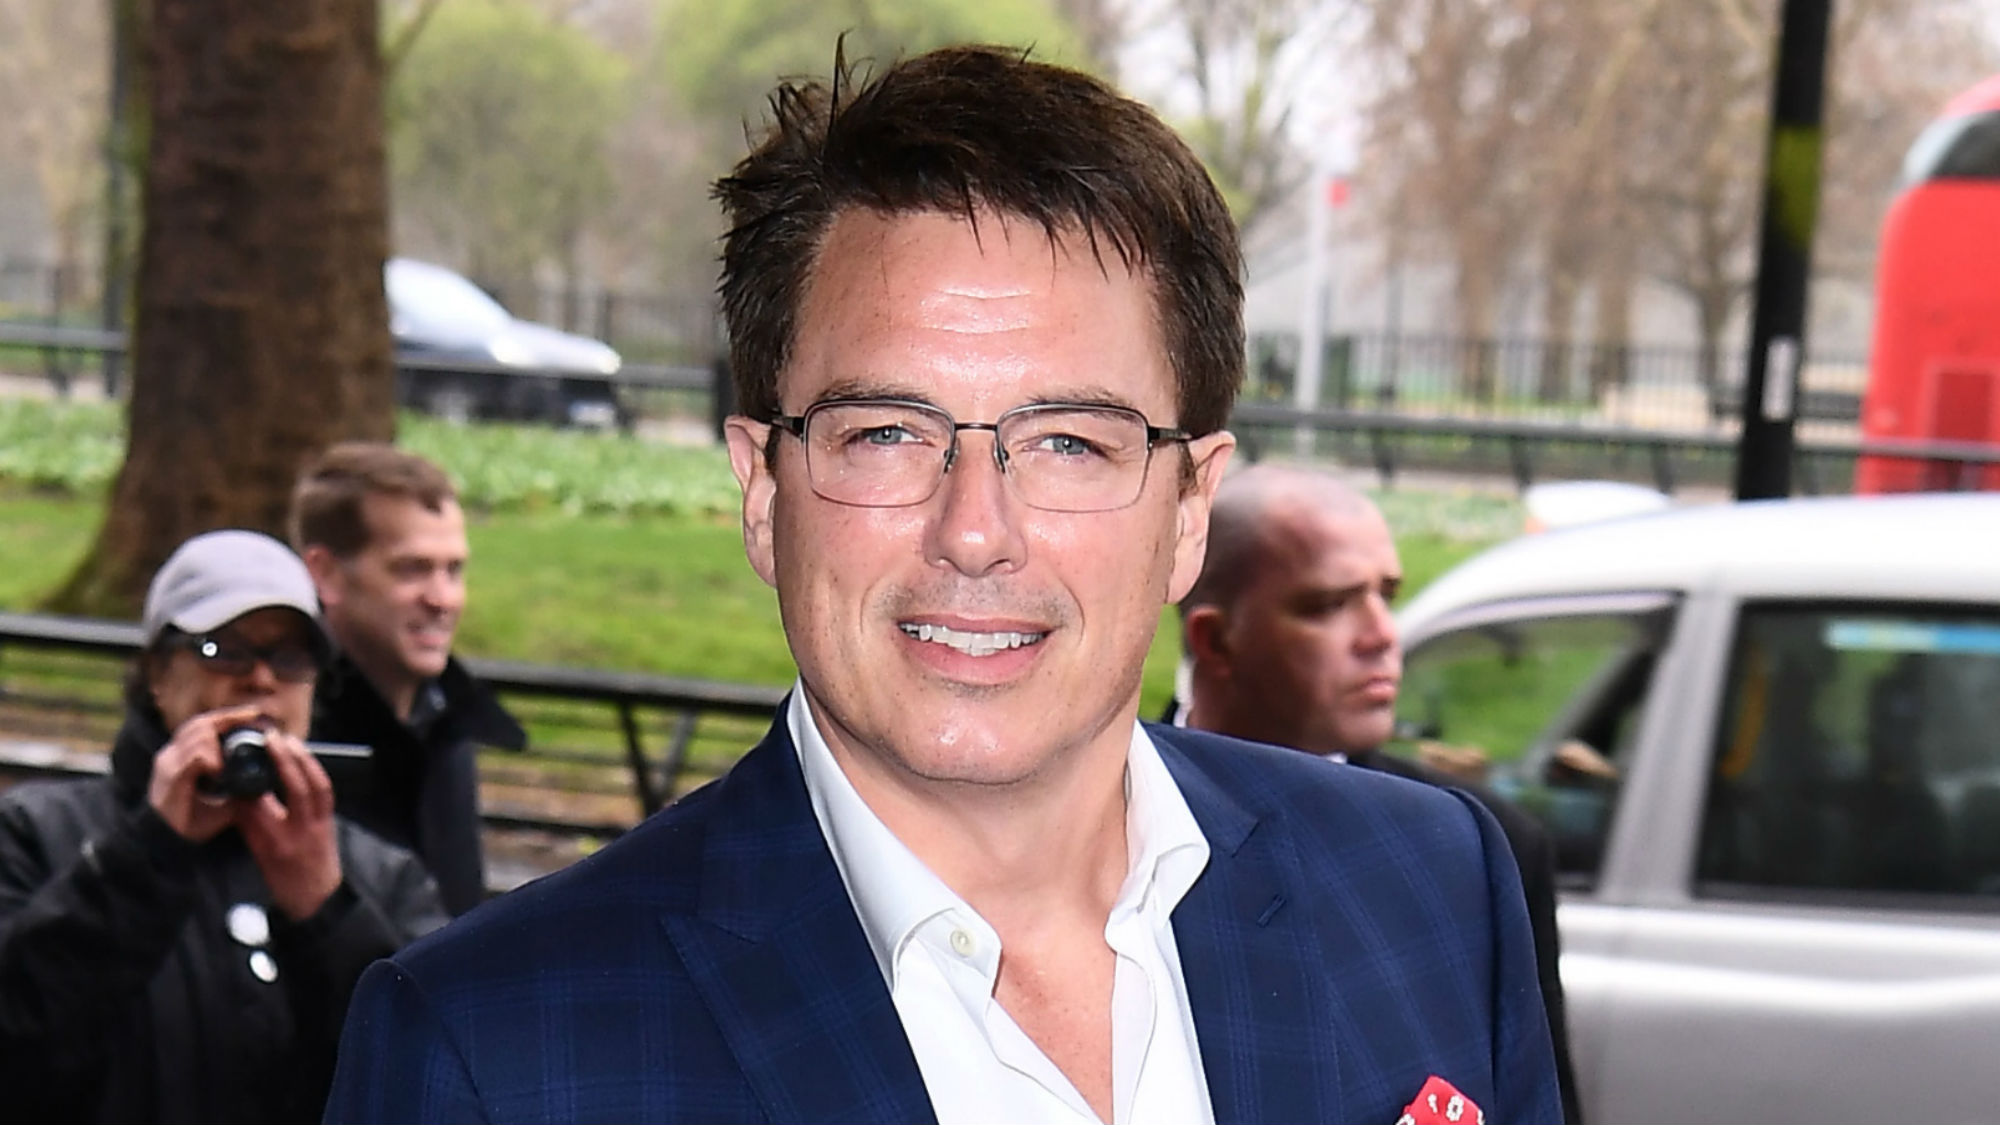 'Doctor Who' Actor John Barrowman Confirms He's Recovering ...